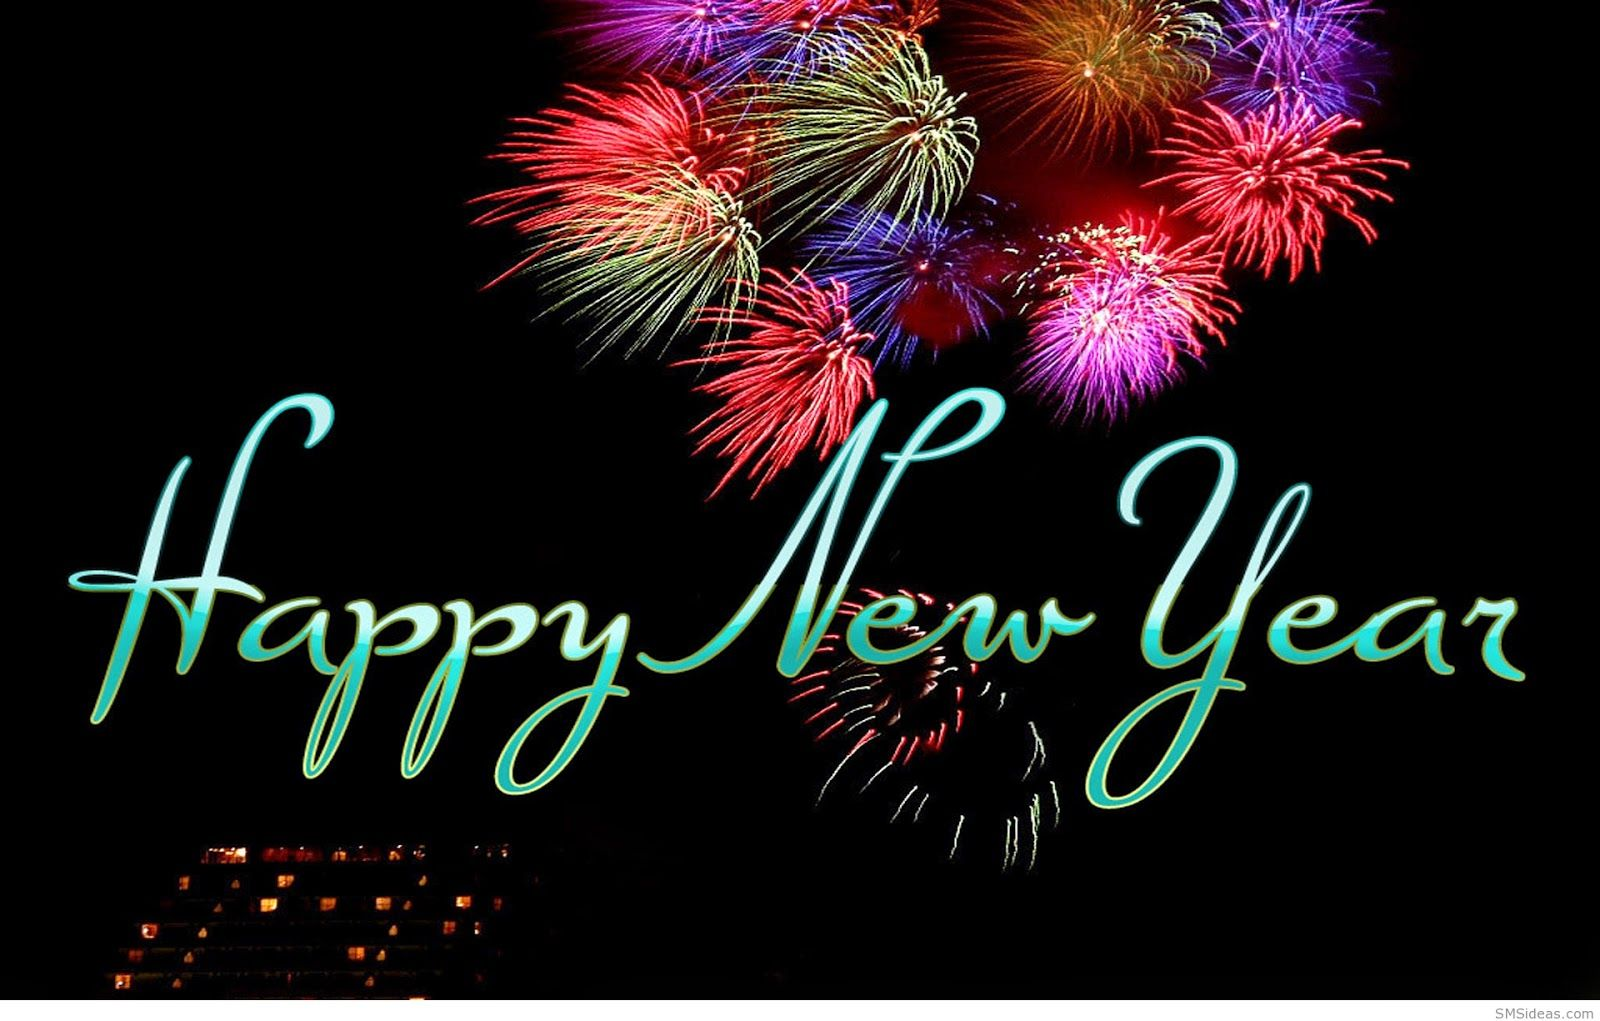 best 25+ happy new year poem ideas on pinterest | happy new year